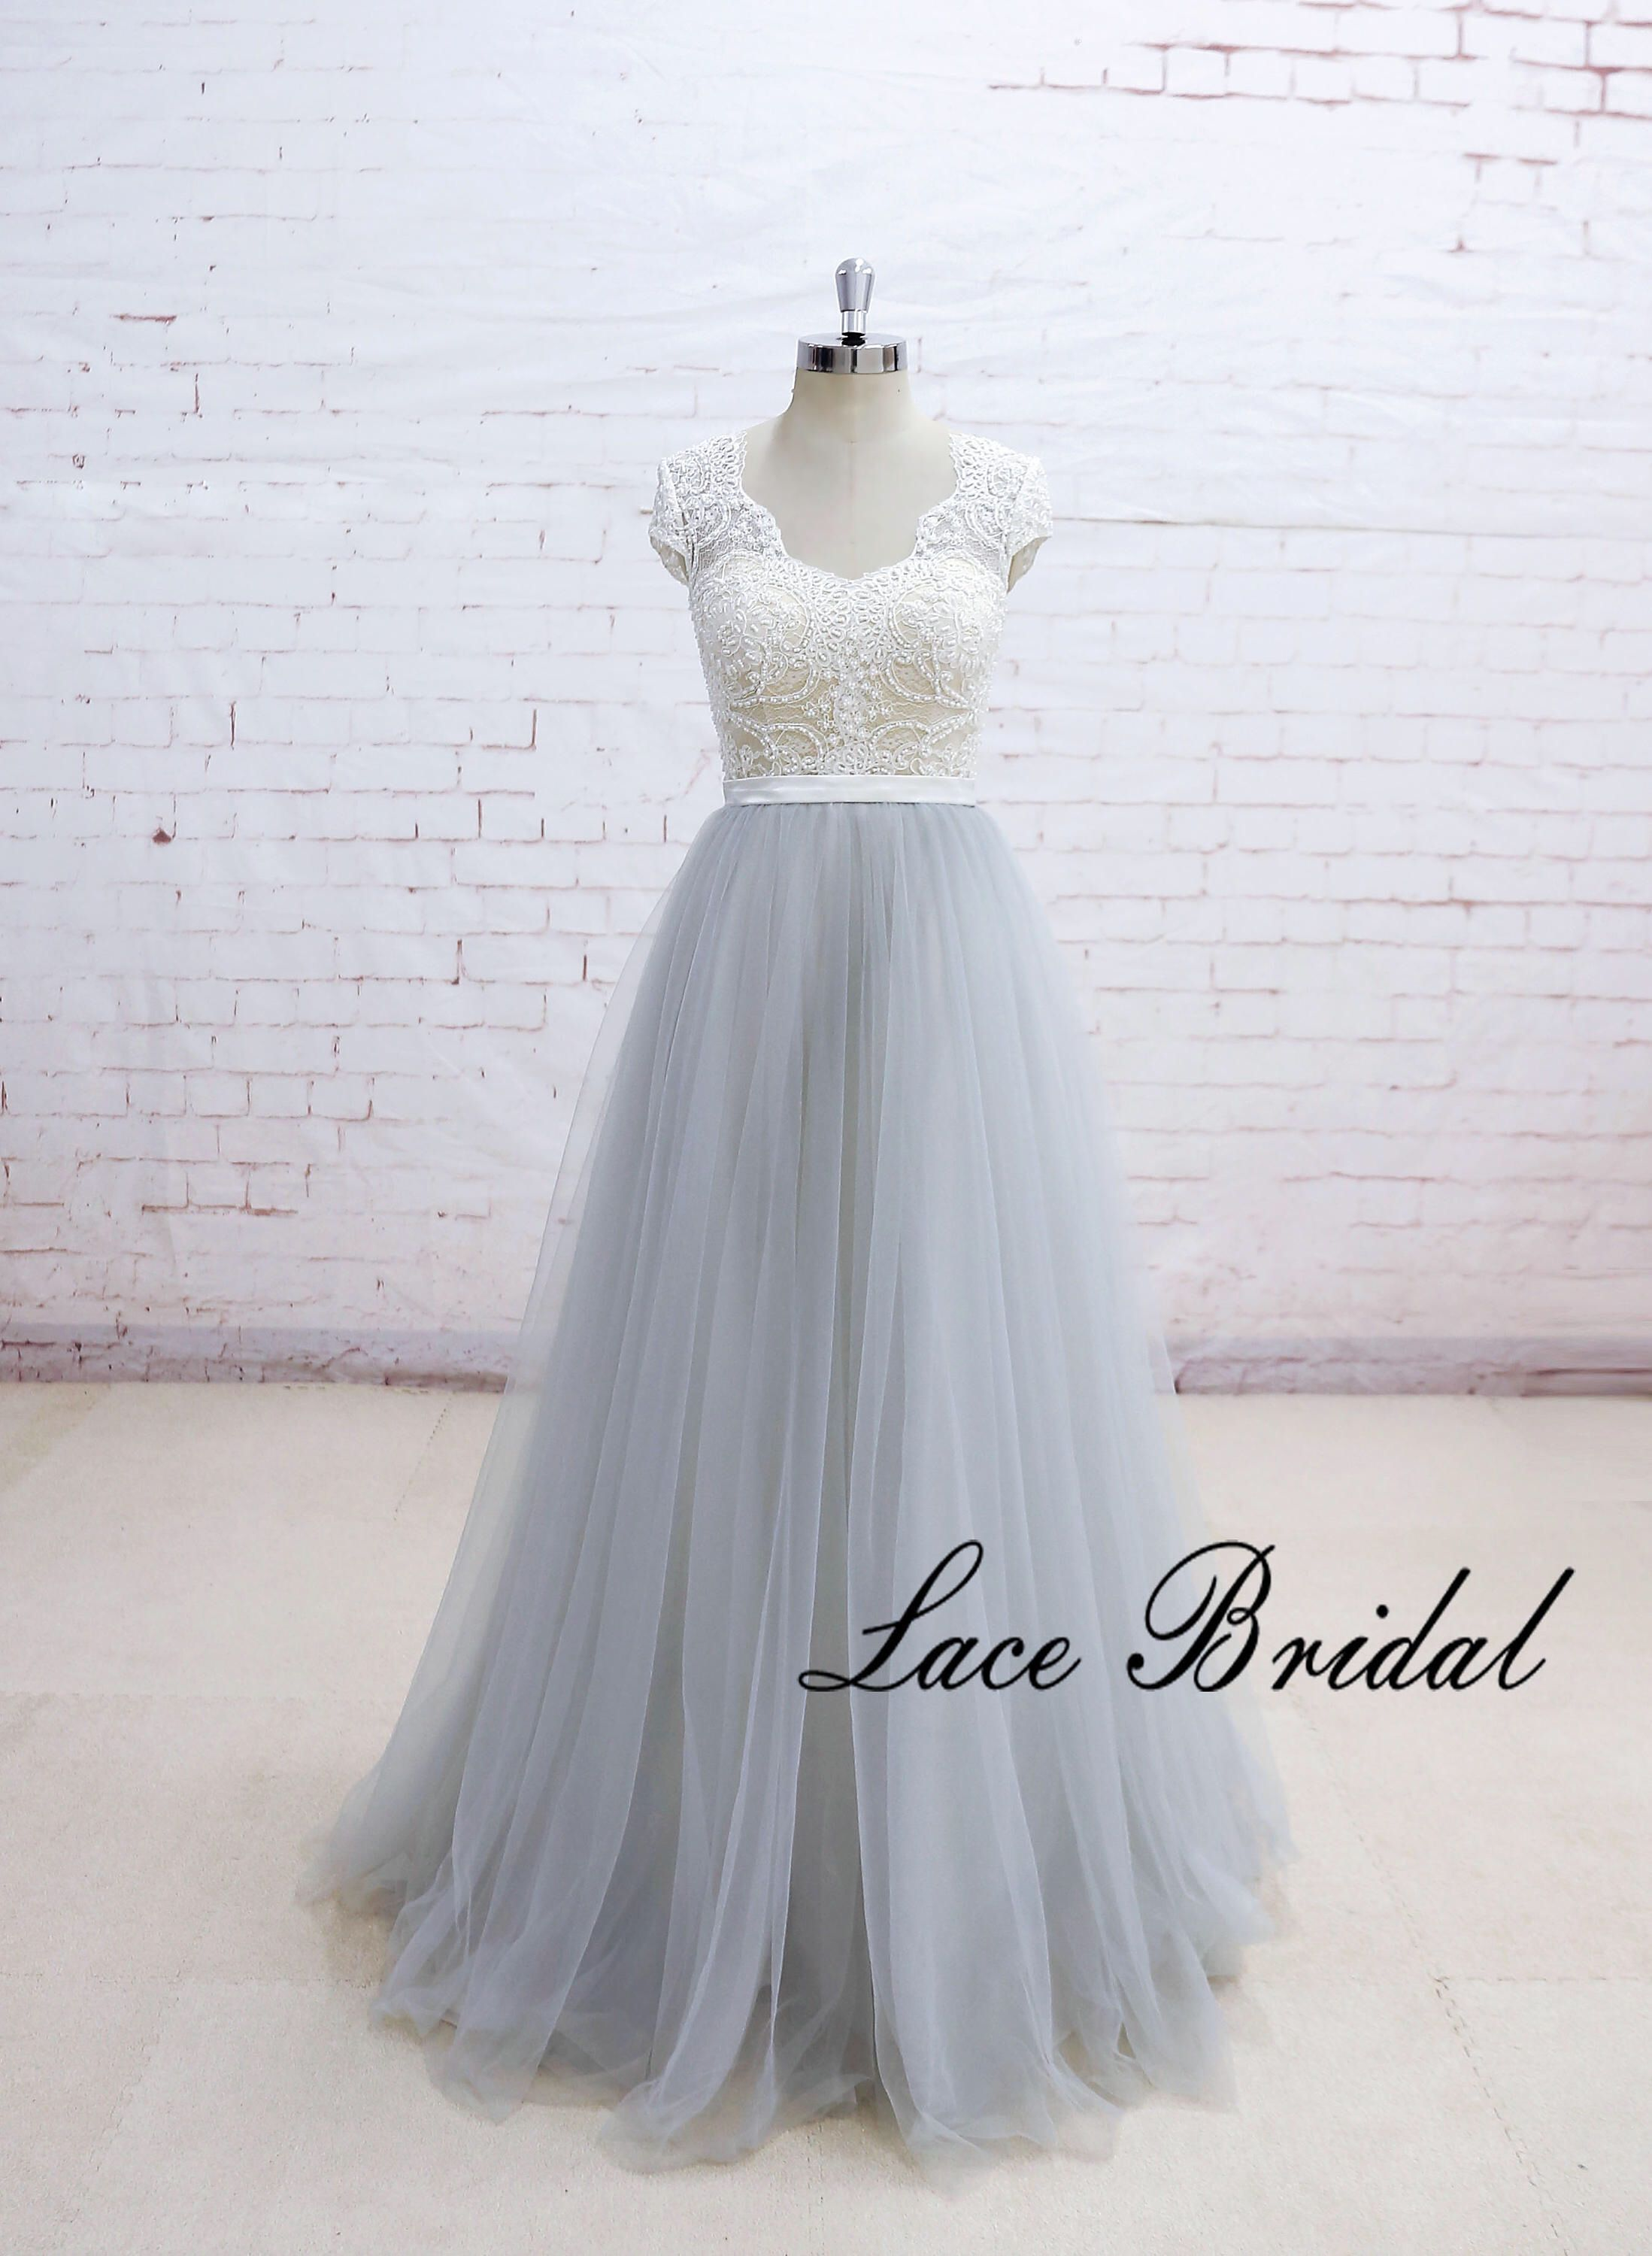 Champagne underlay boho wedding dress with cap sleeves and sheer